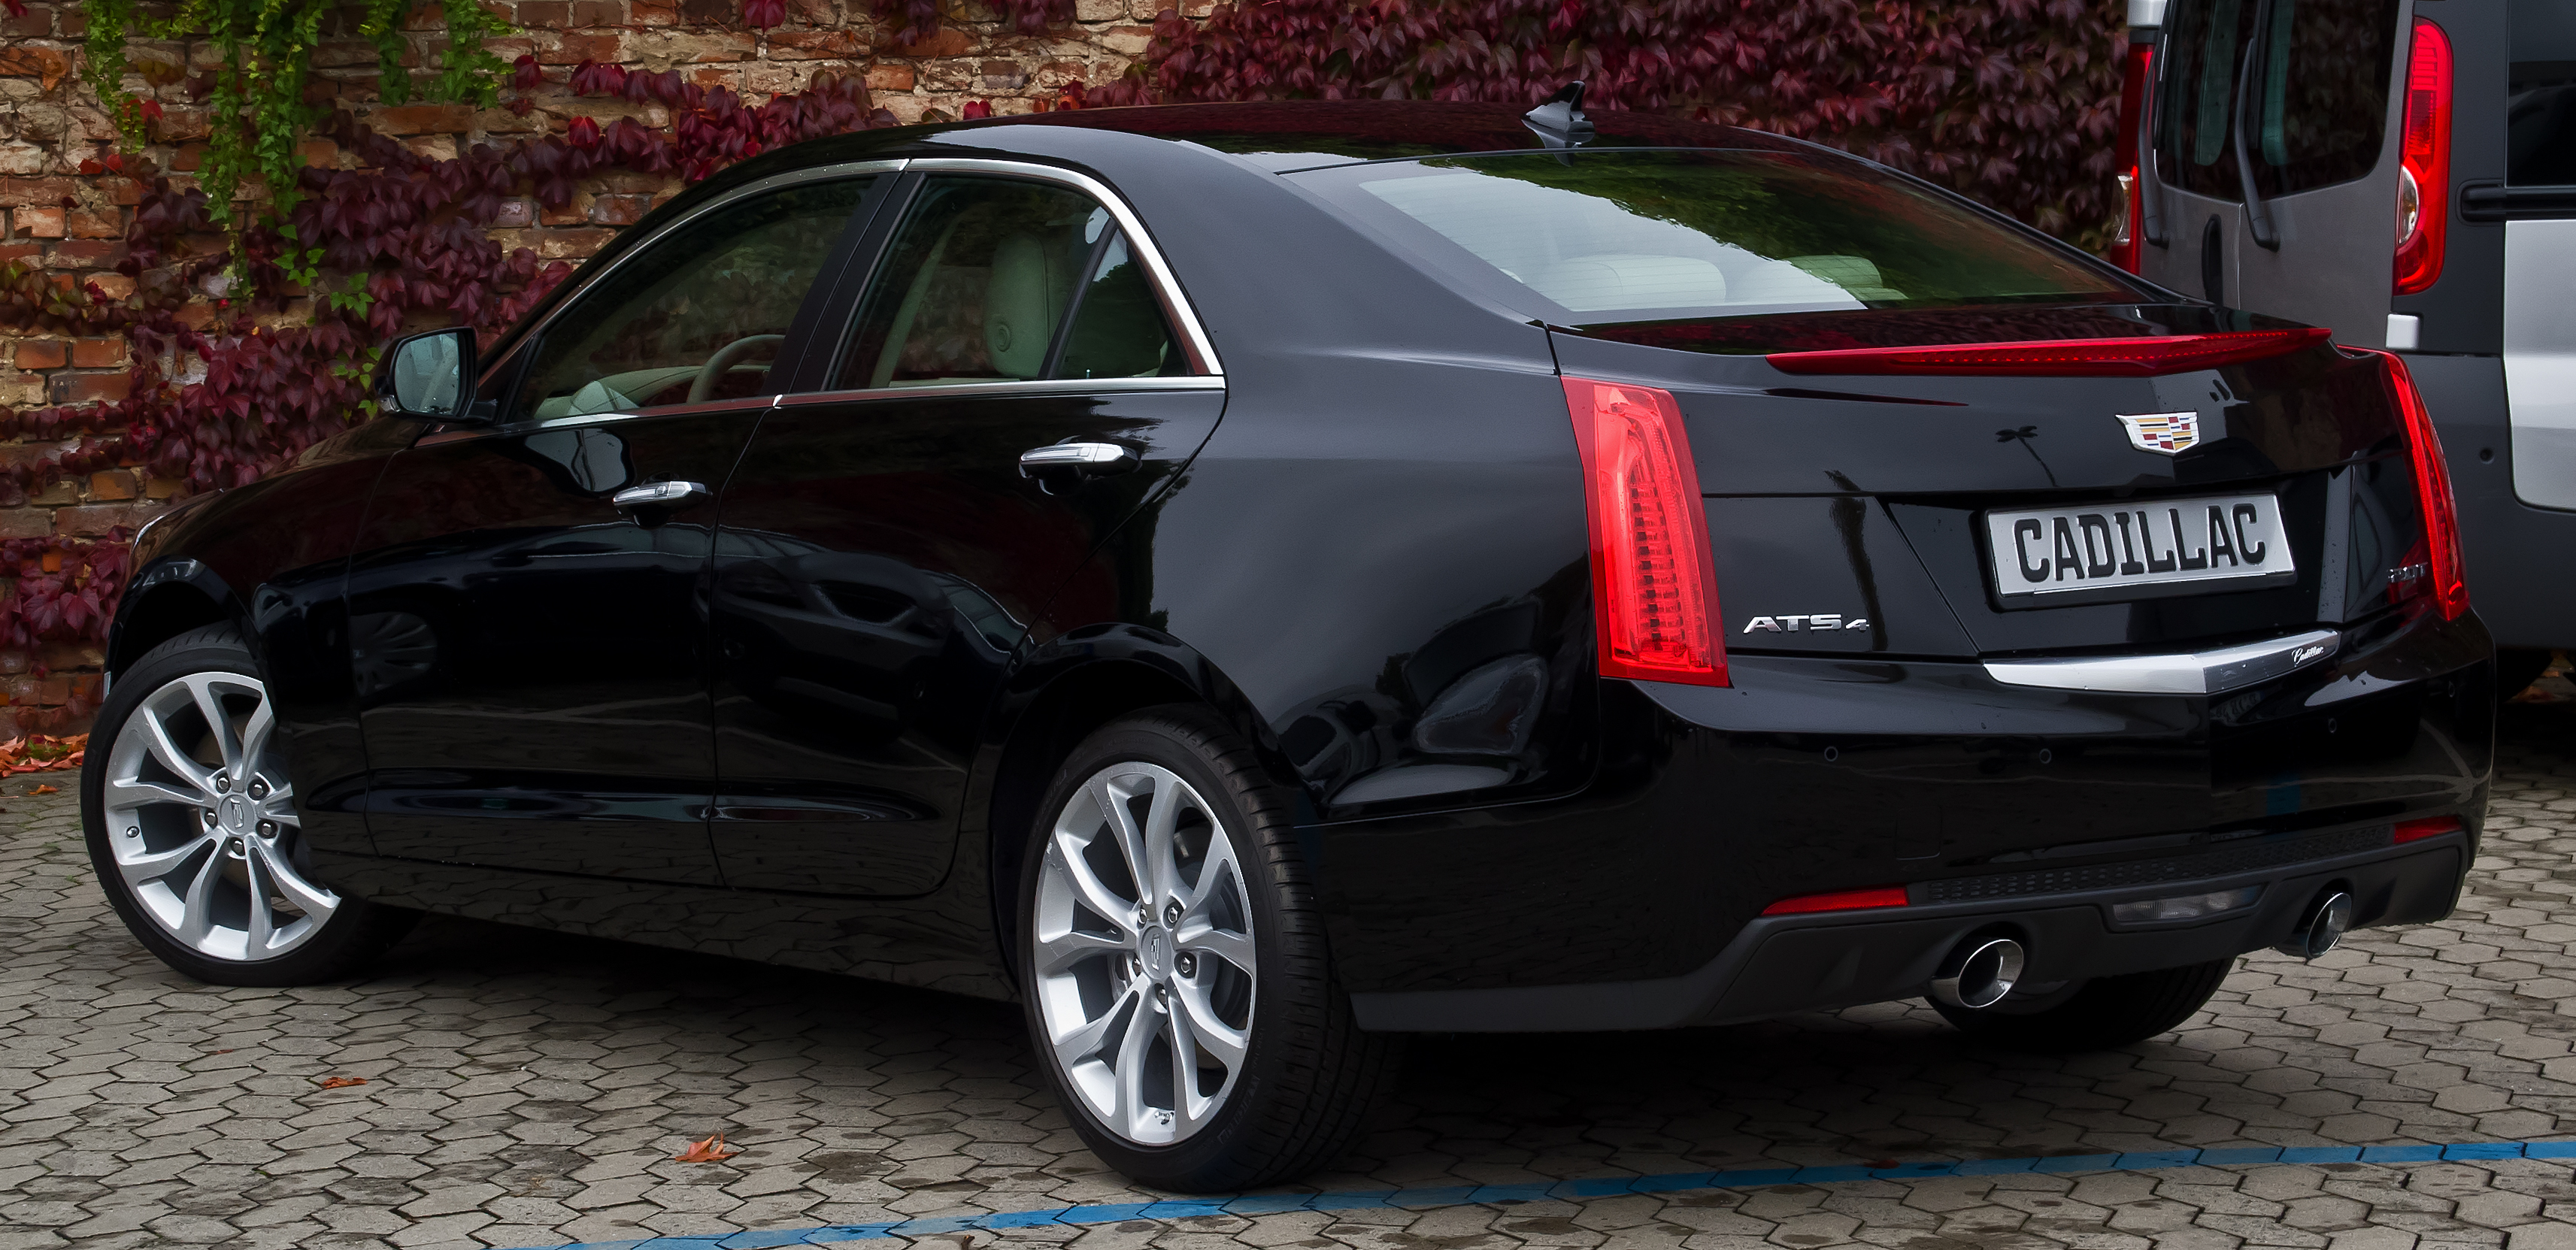 file cadillac ats 2 0 turbo awd premium heckansicht 16 oktober 2015 d. Black Bedroom Furniture Sets. Home Design Ideas